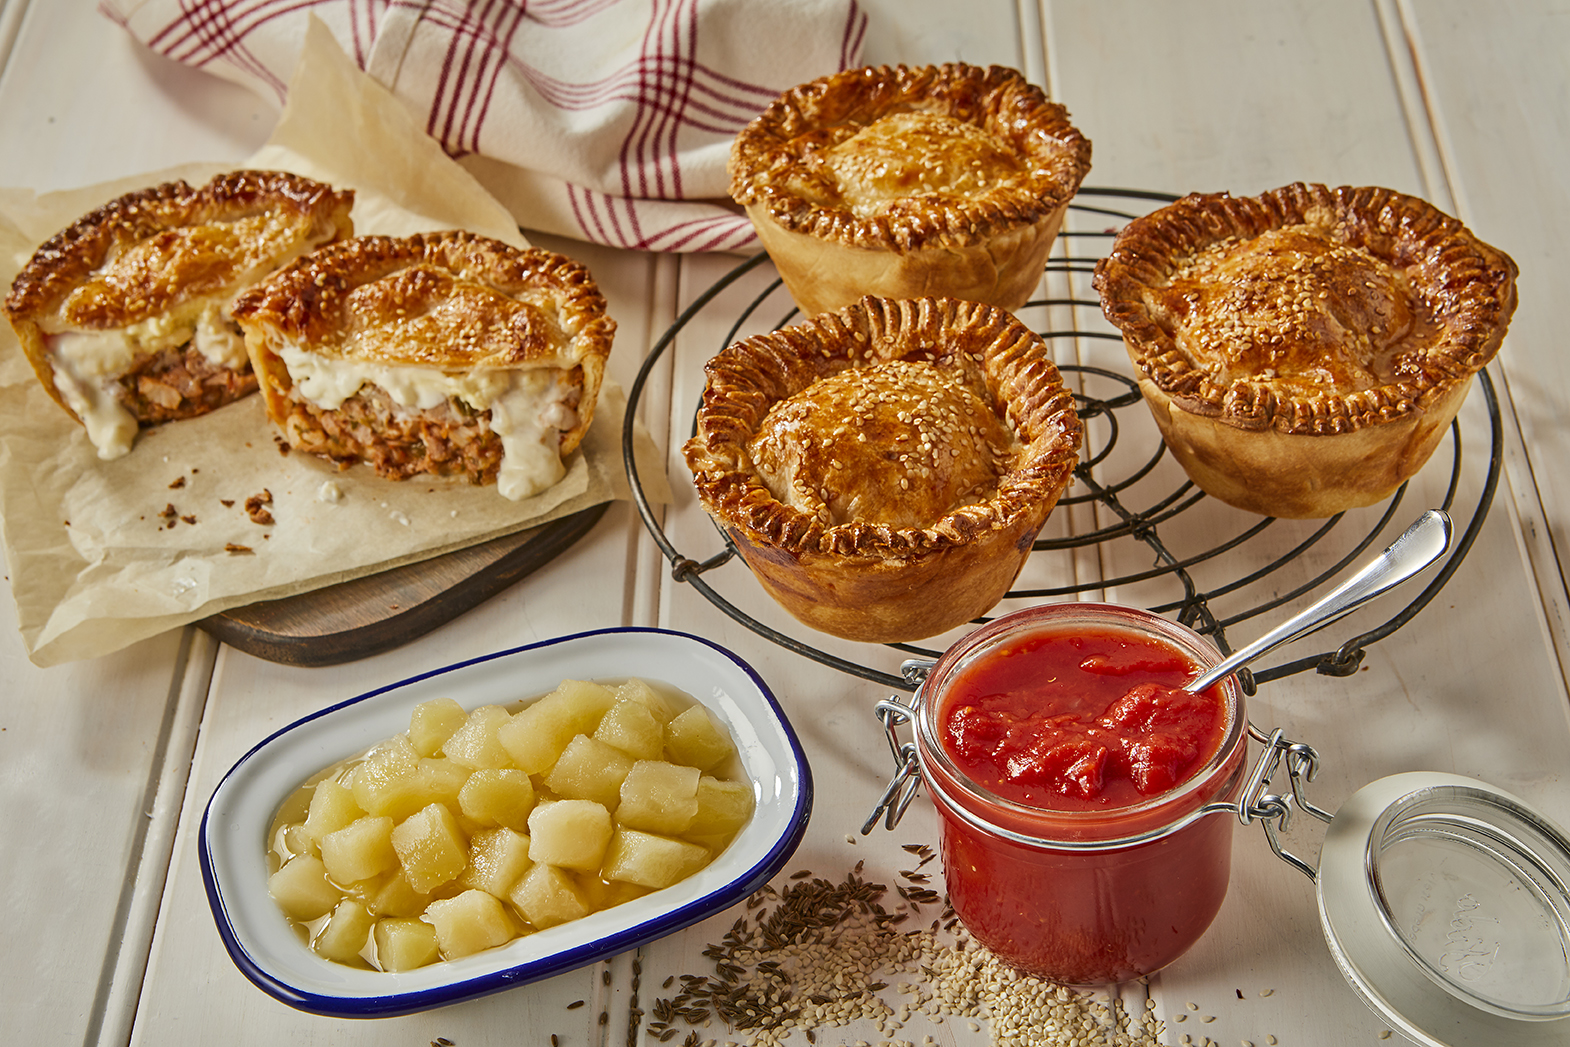 Apple and Pork Pies